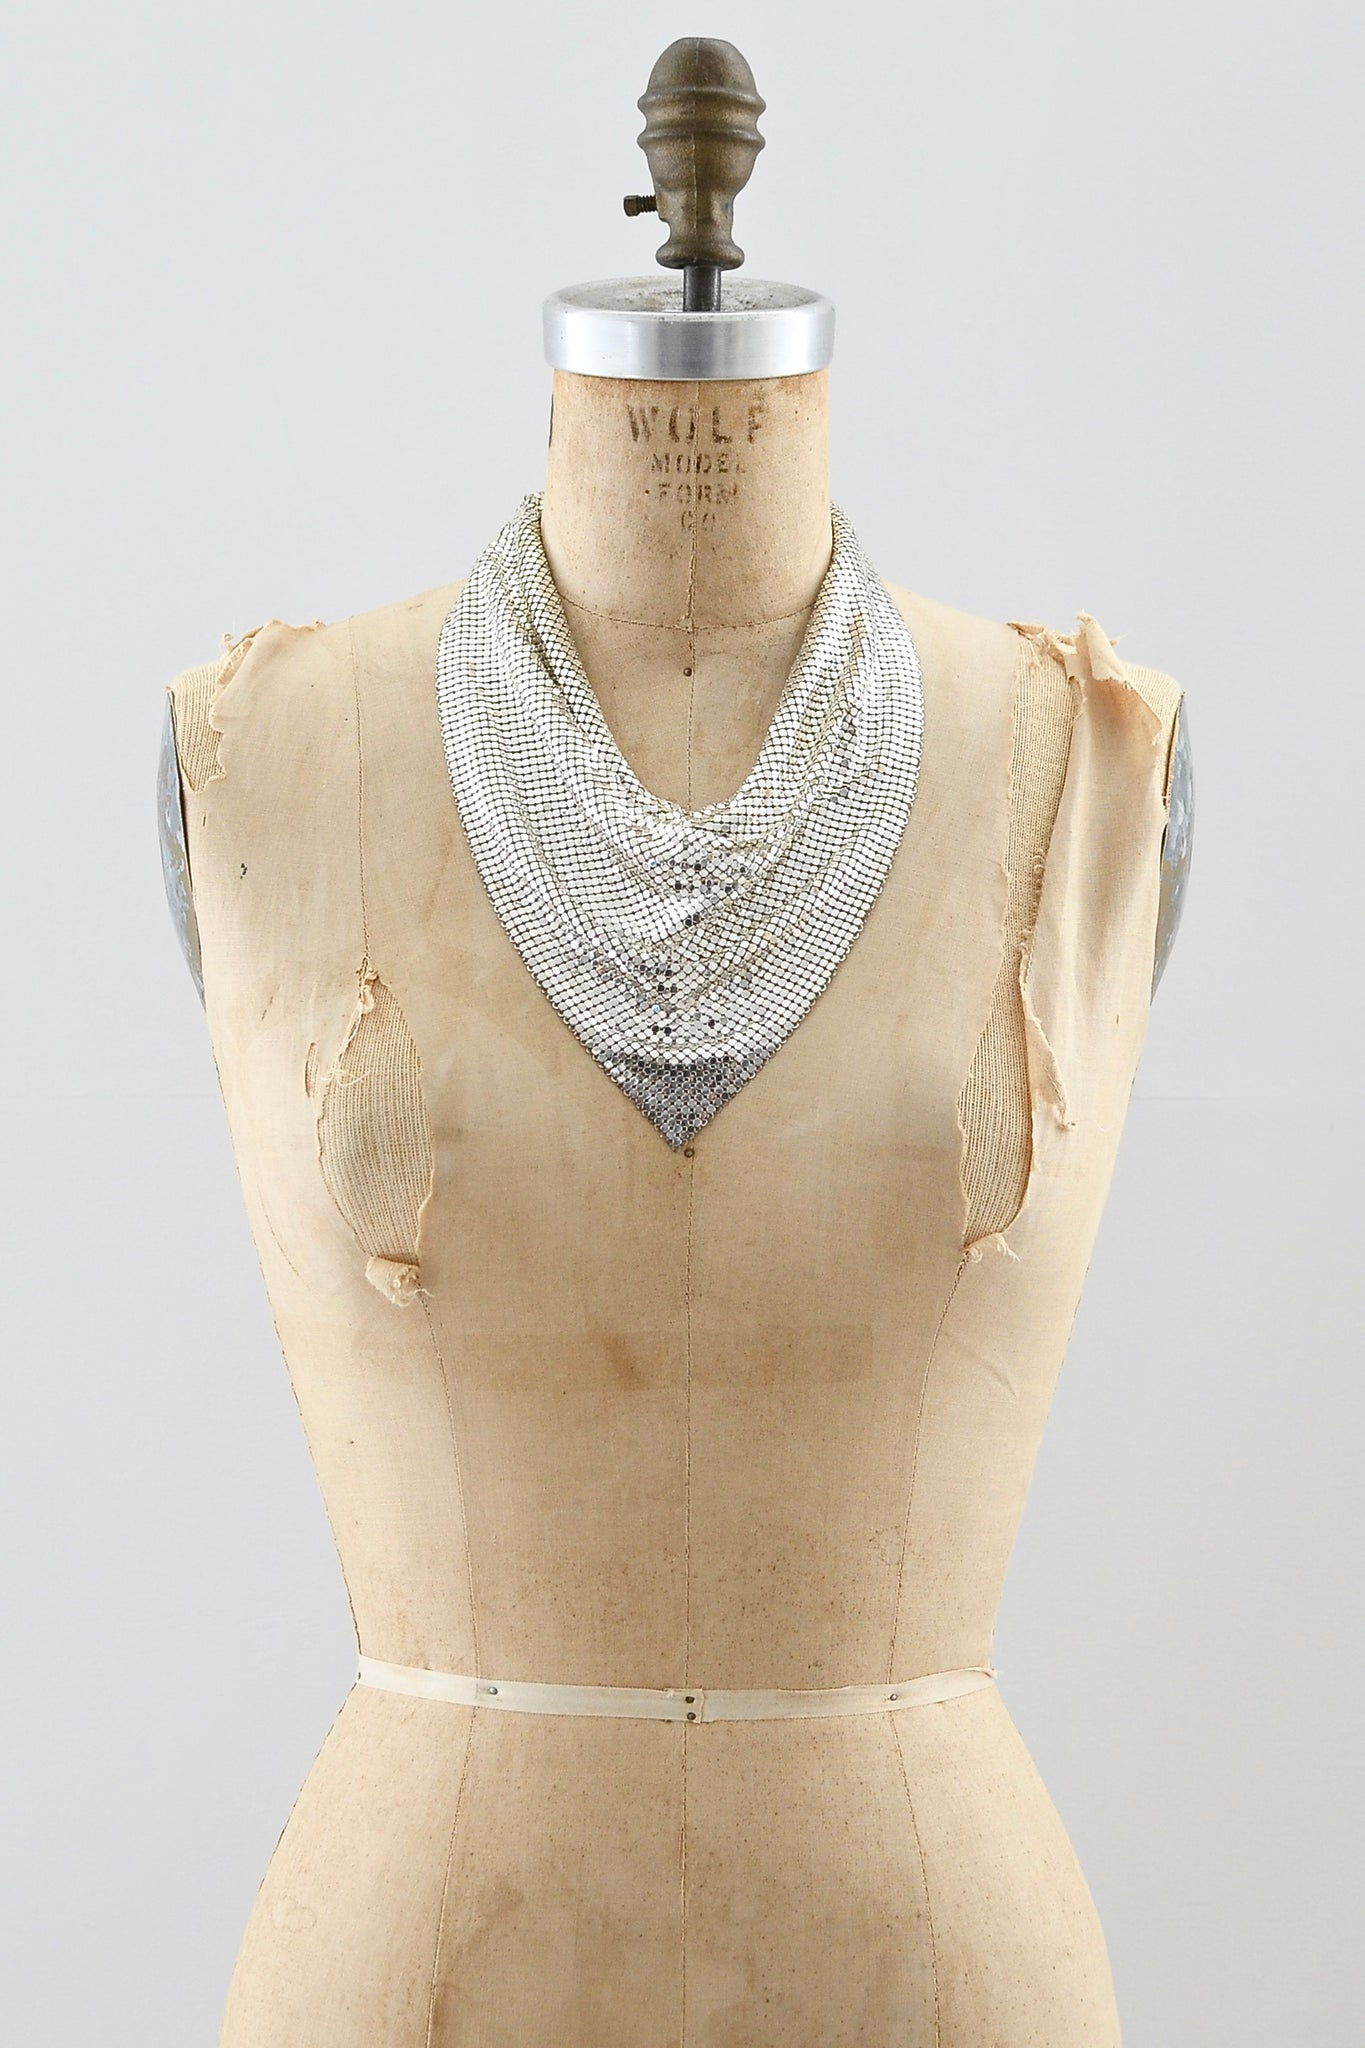 Vintage Whiting & Davis Mesh Necklace - Pickled Vintage